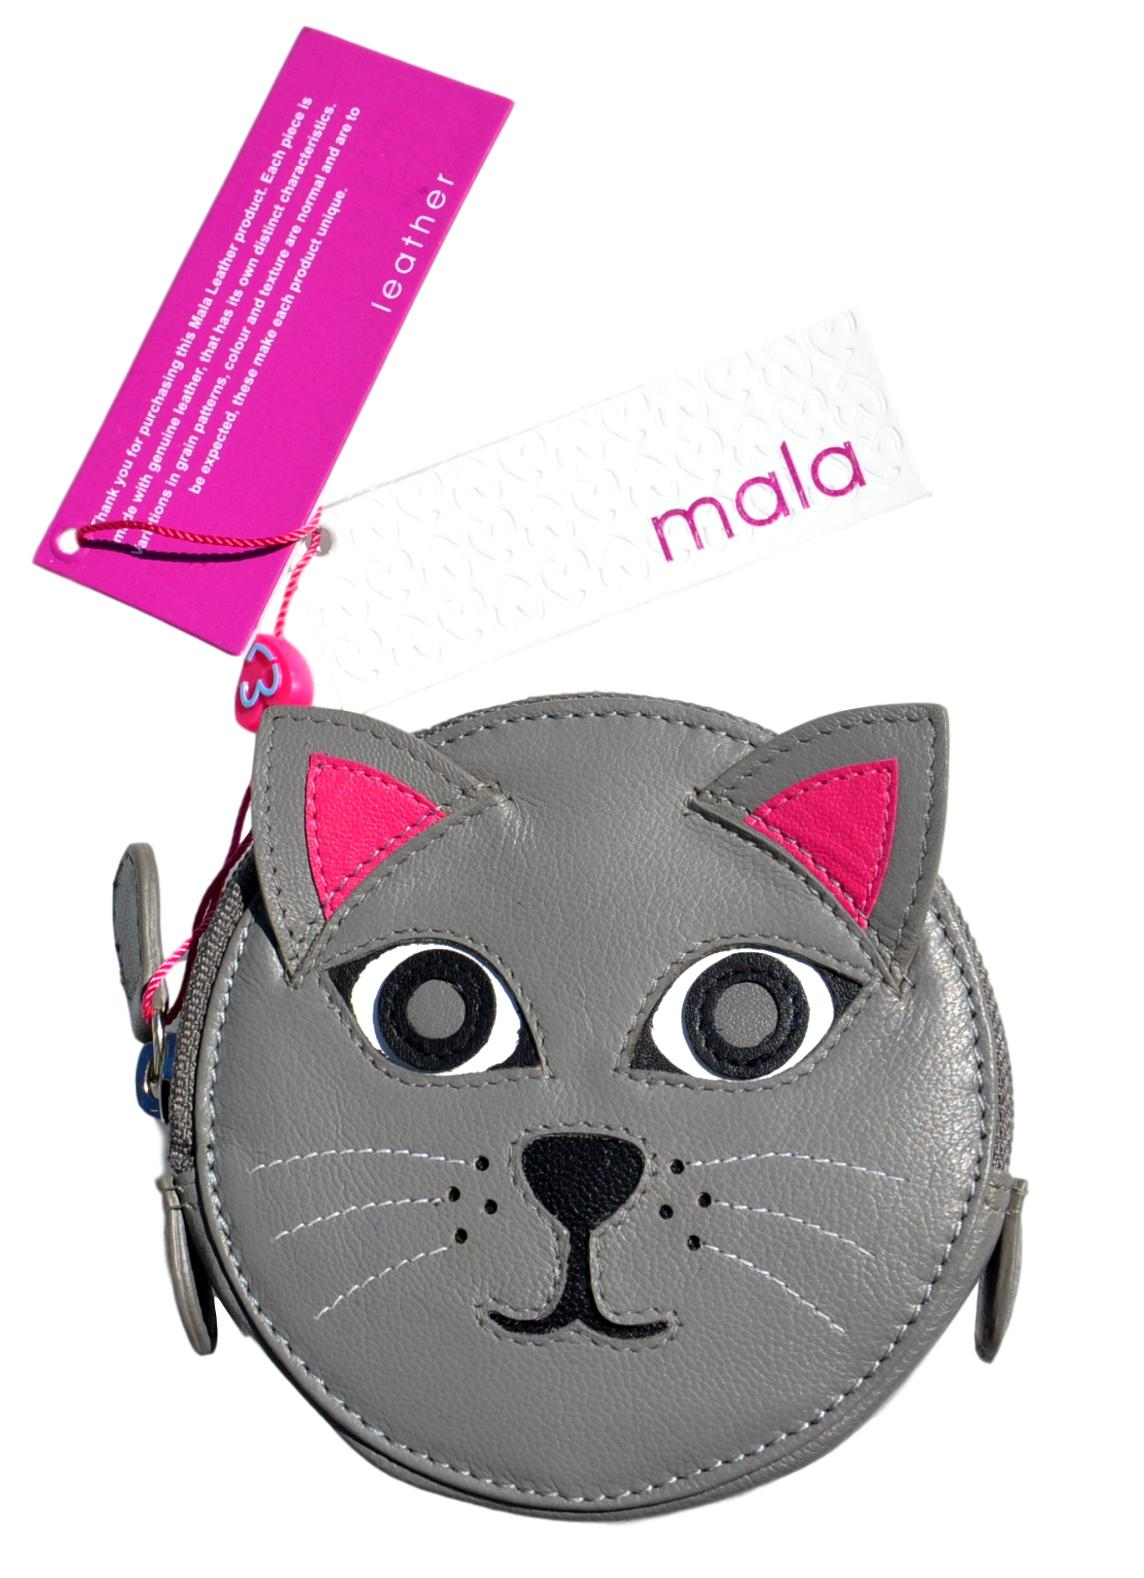 Mala Leather Pinky Cat Round Coin Purse